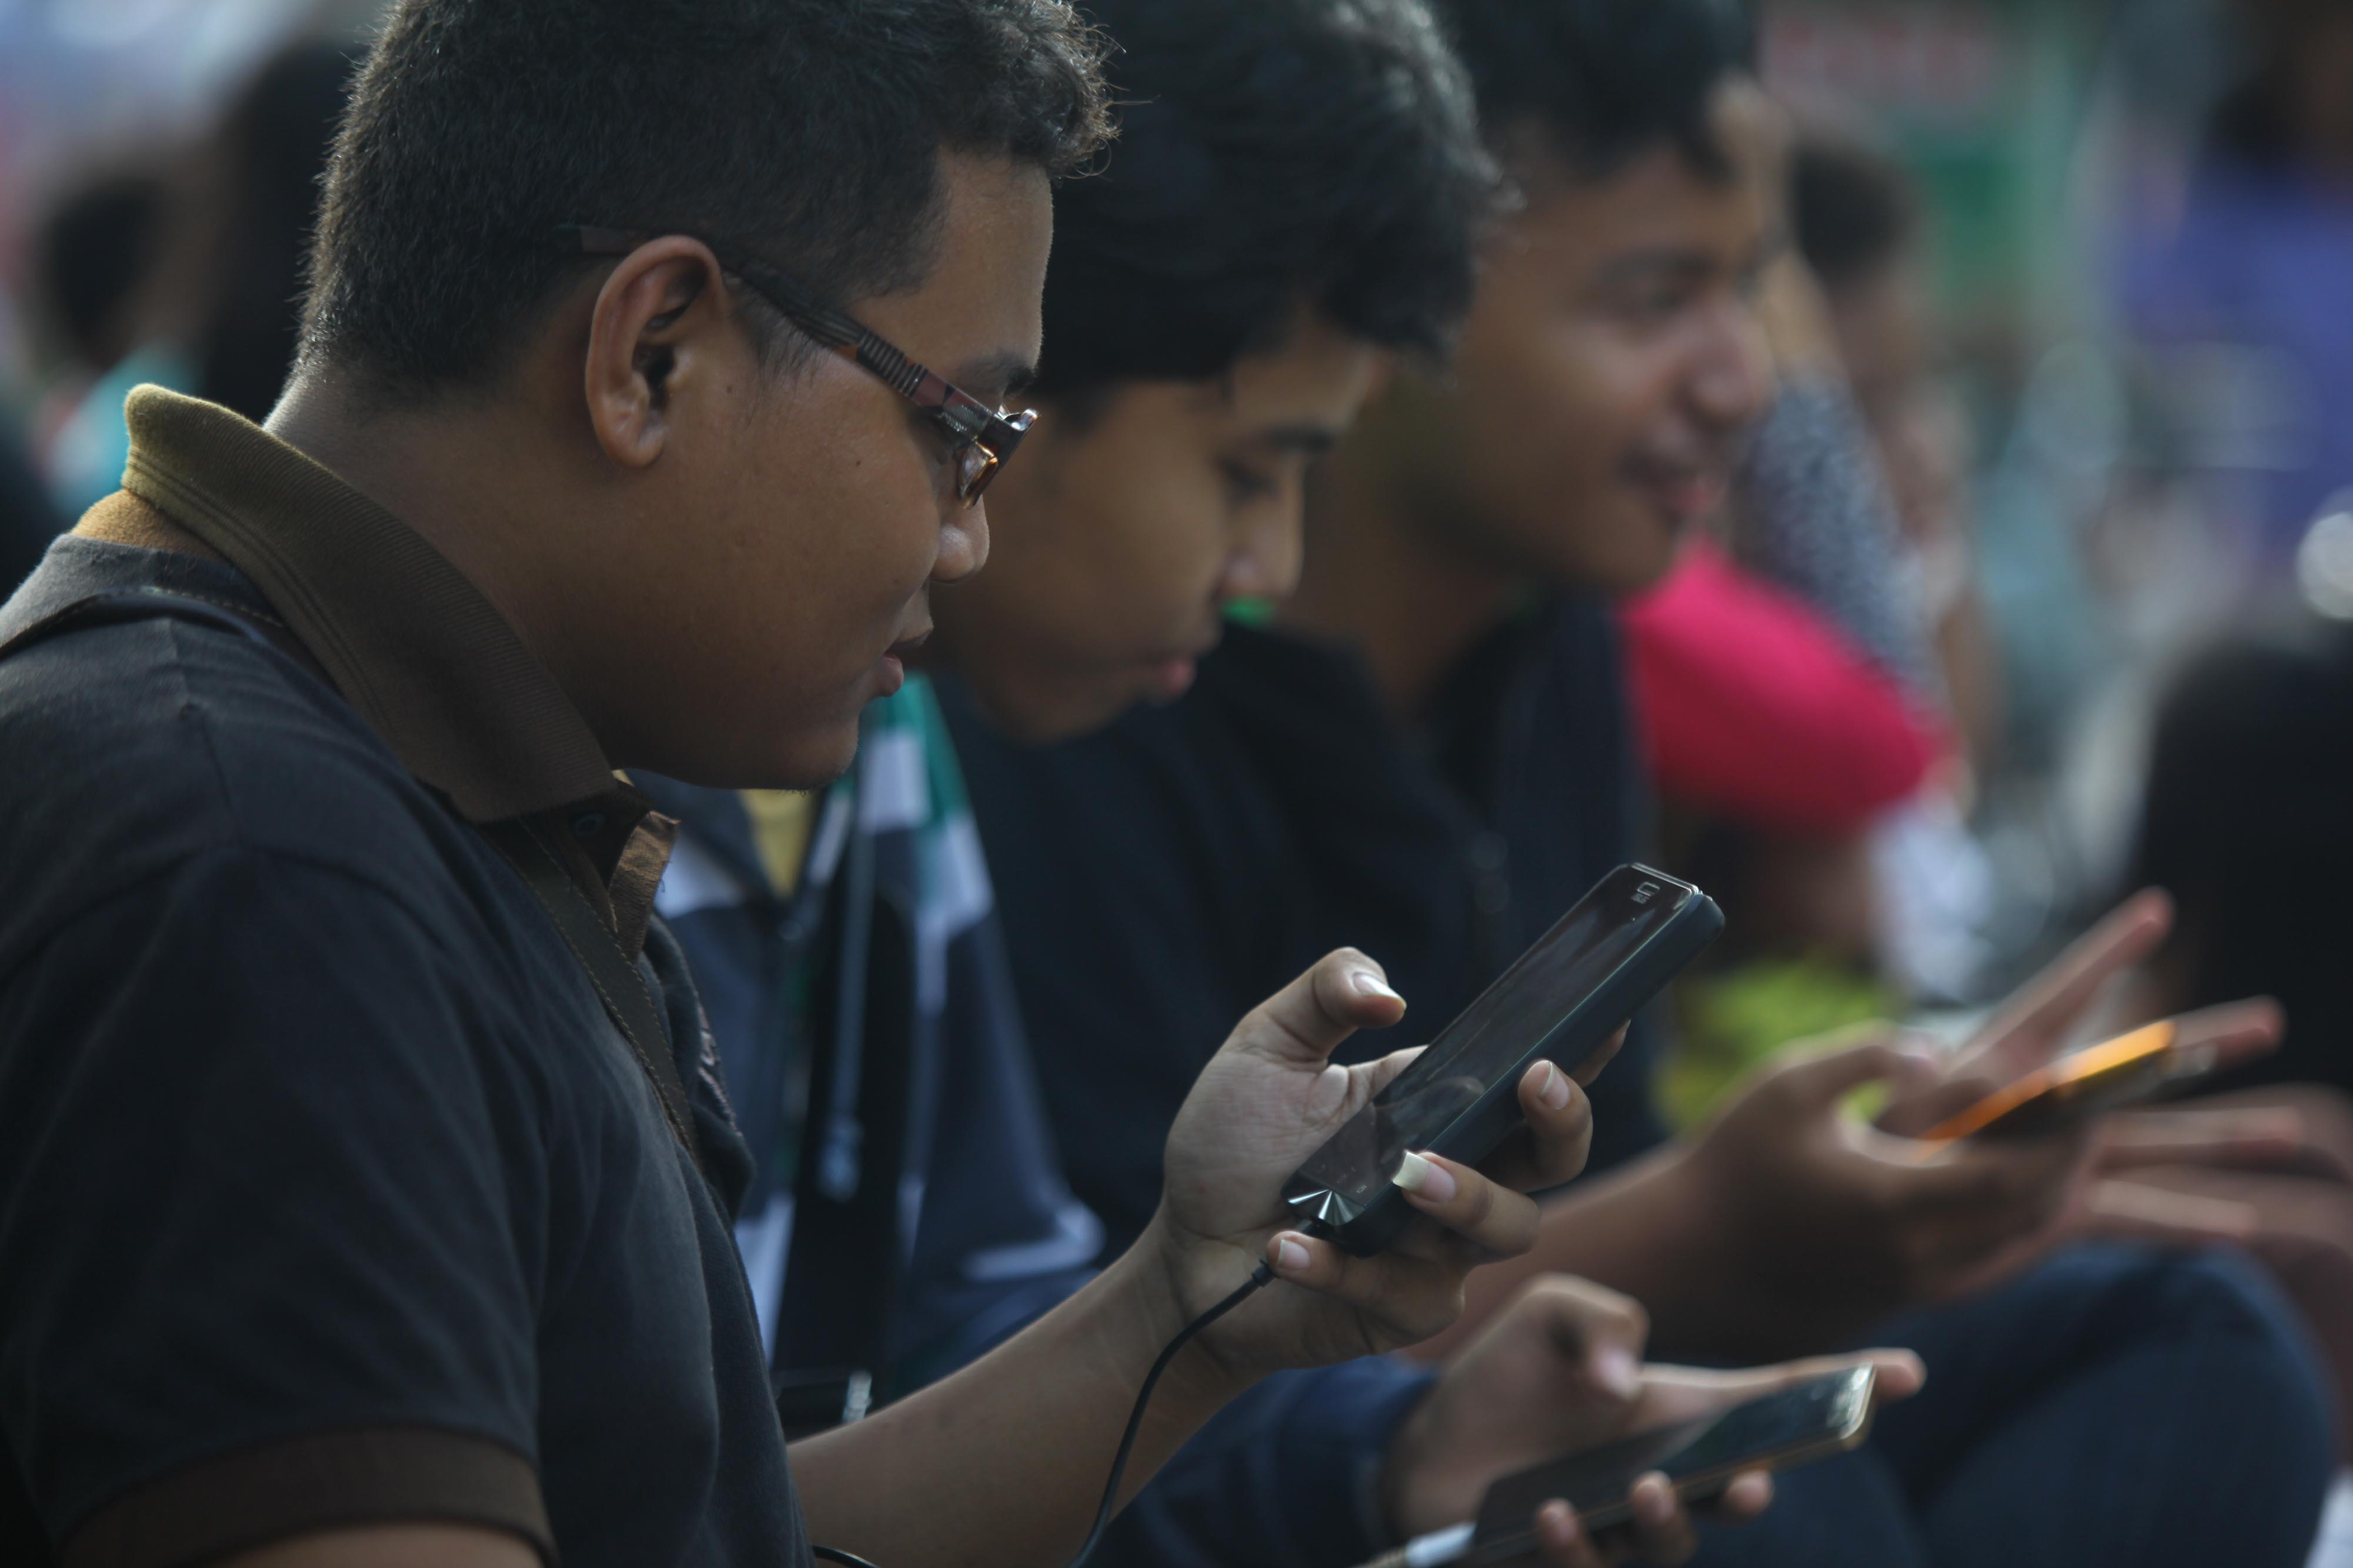 WhatsApp Donates $1 Million to Fight Misinformation About COVID-19